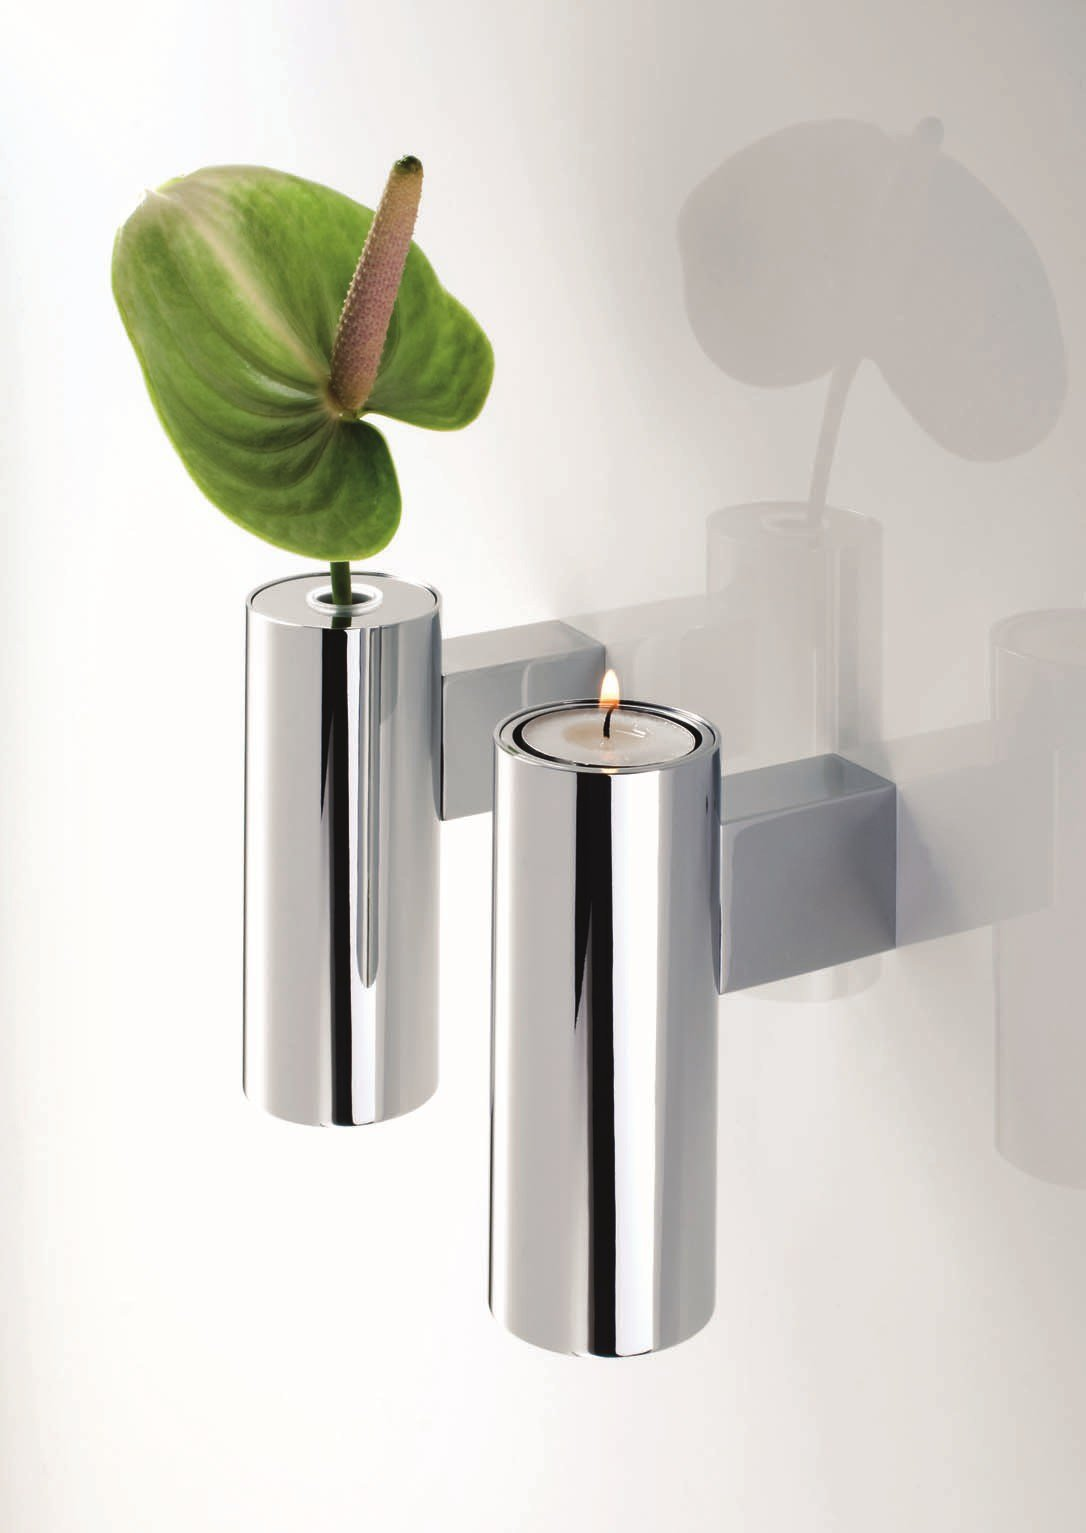 chrome plated candle holder tb vkh by decor walther -